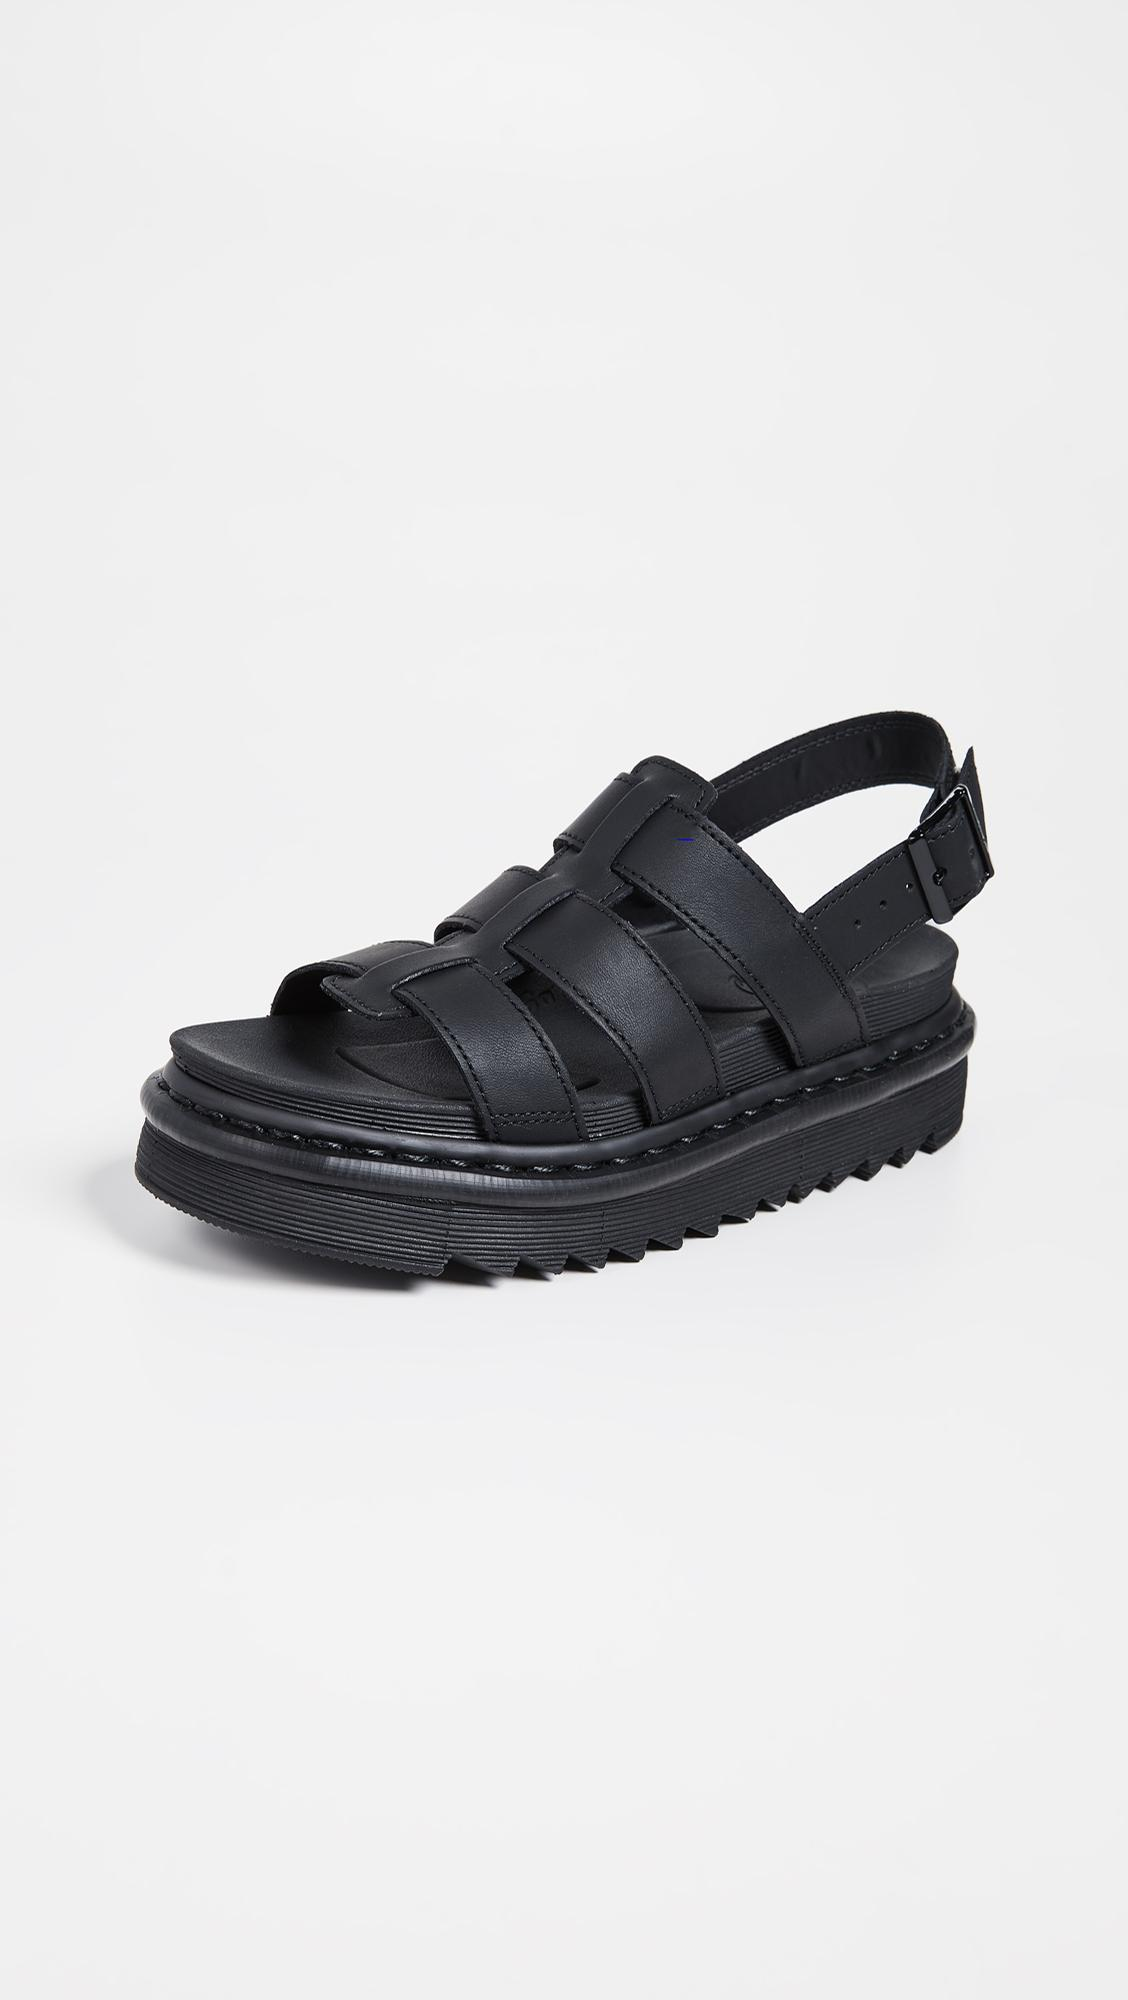 9a9367493d0f Lyst - Dr. Martens Yelena Sandals in Black